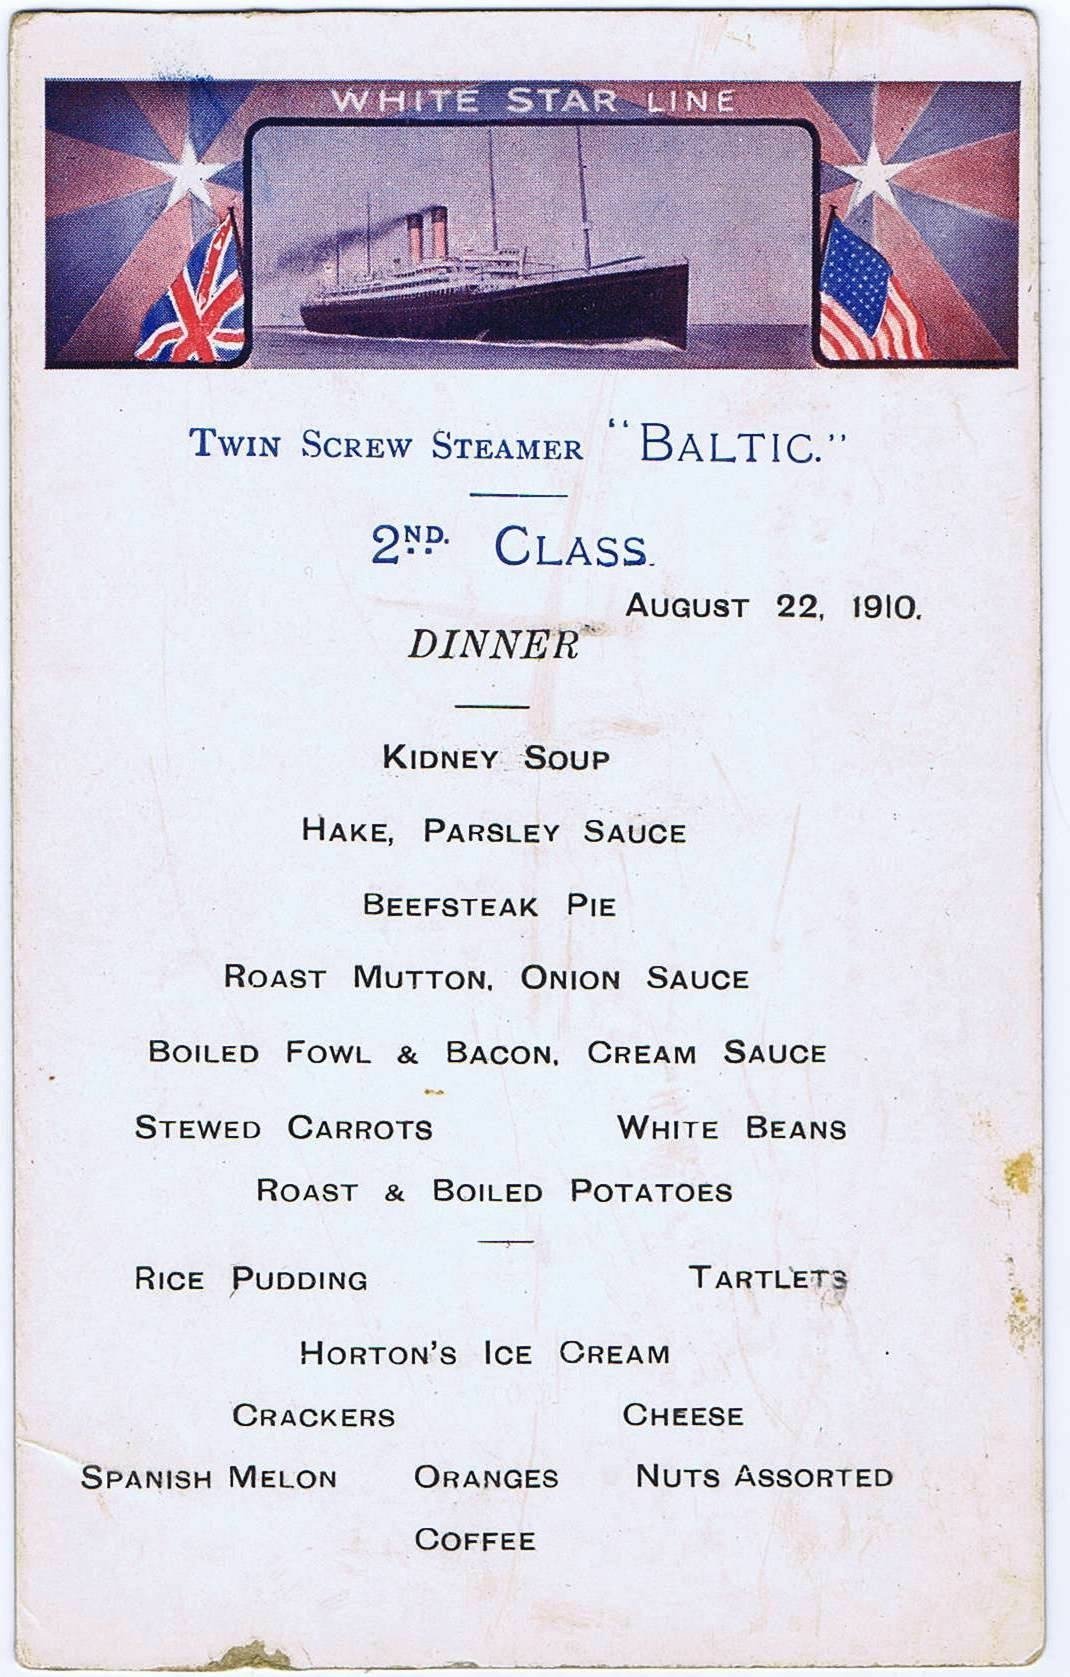 Dinner menu 2nd class. White Star Line Steamer Baltic, Aug 22, 1910